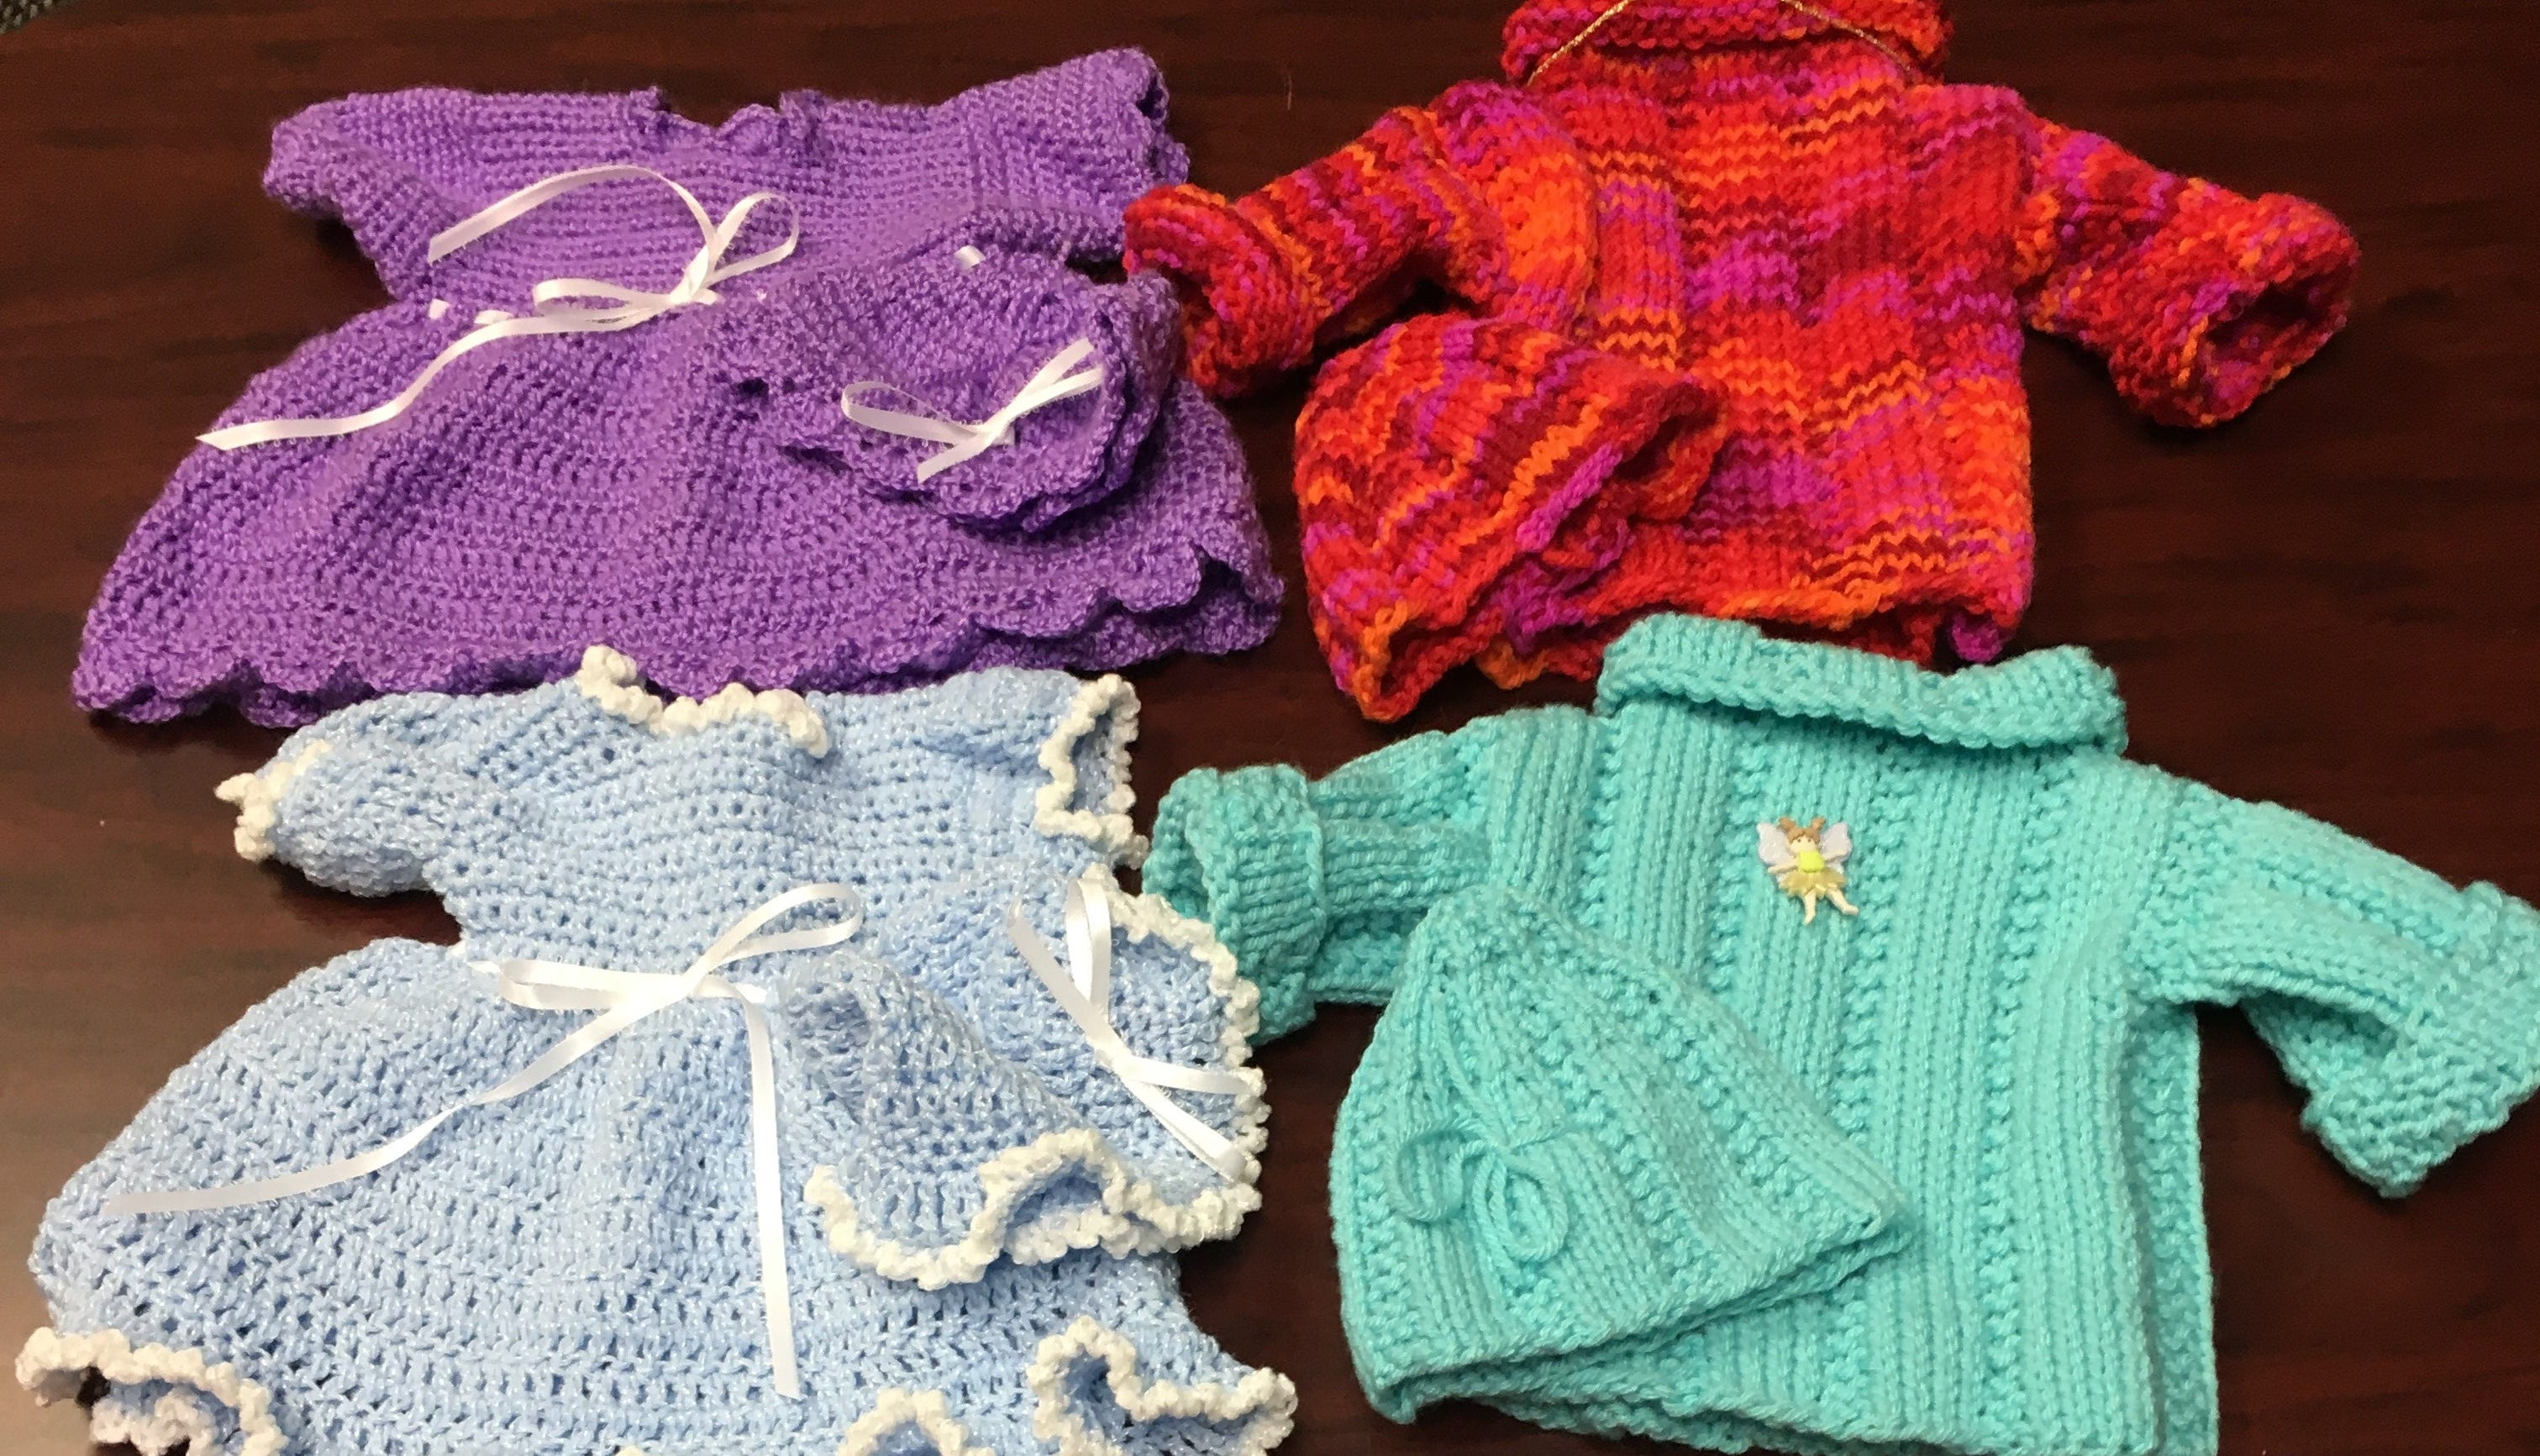 In Stitches: Transitioning from summer community projects to winter ones